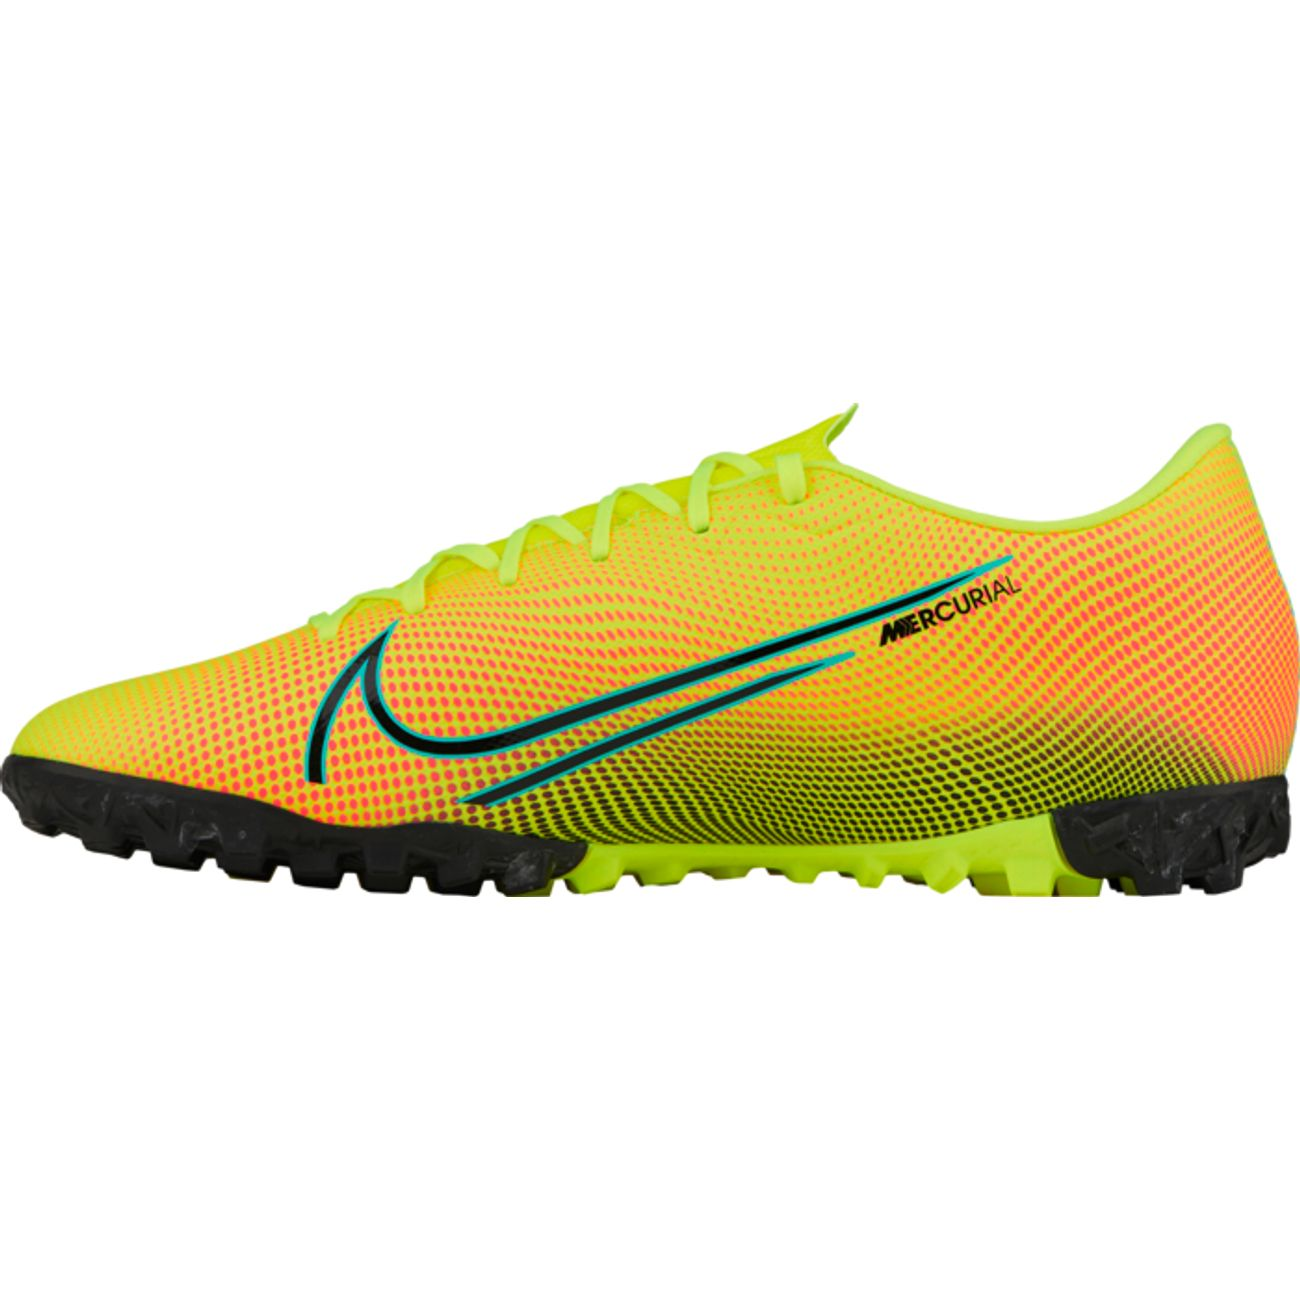 CHAUSSURES BASSES Football adulte NIKE VAPOR 13 ACADEMY MDS TF